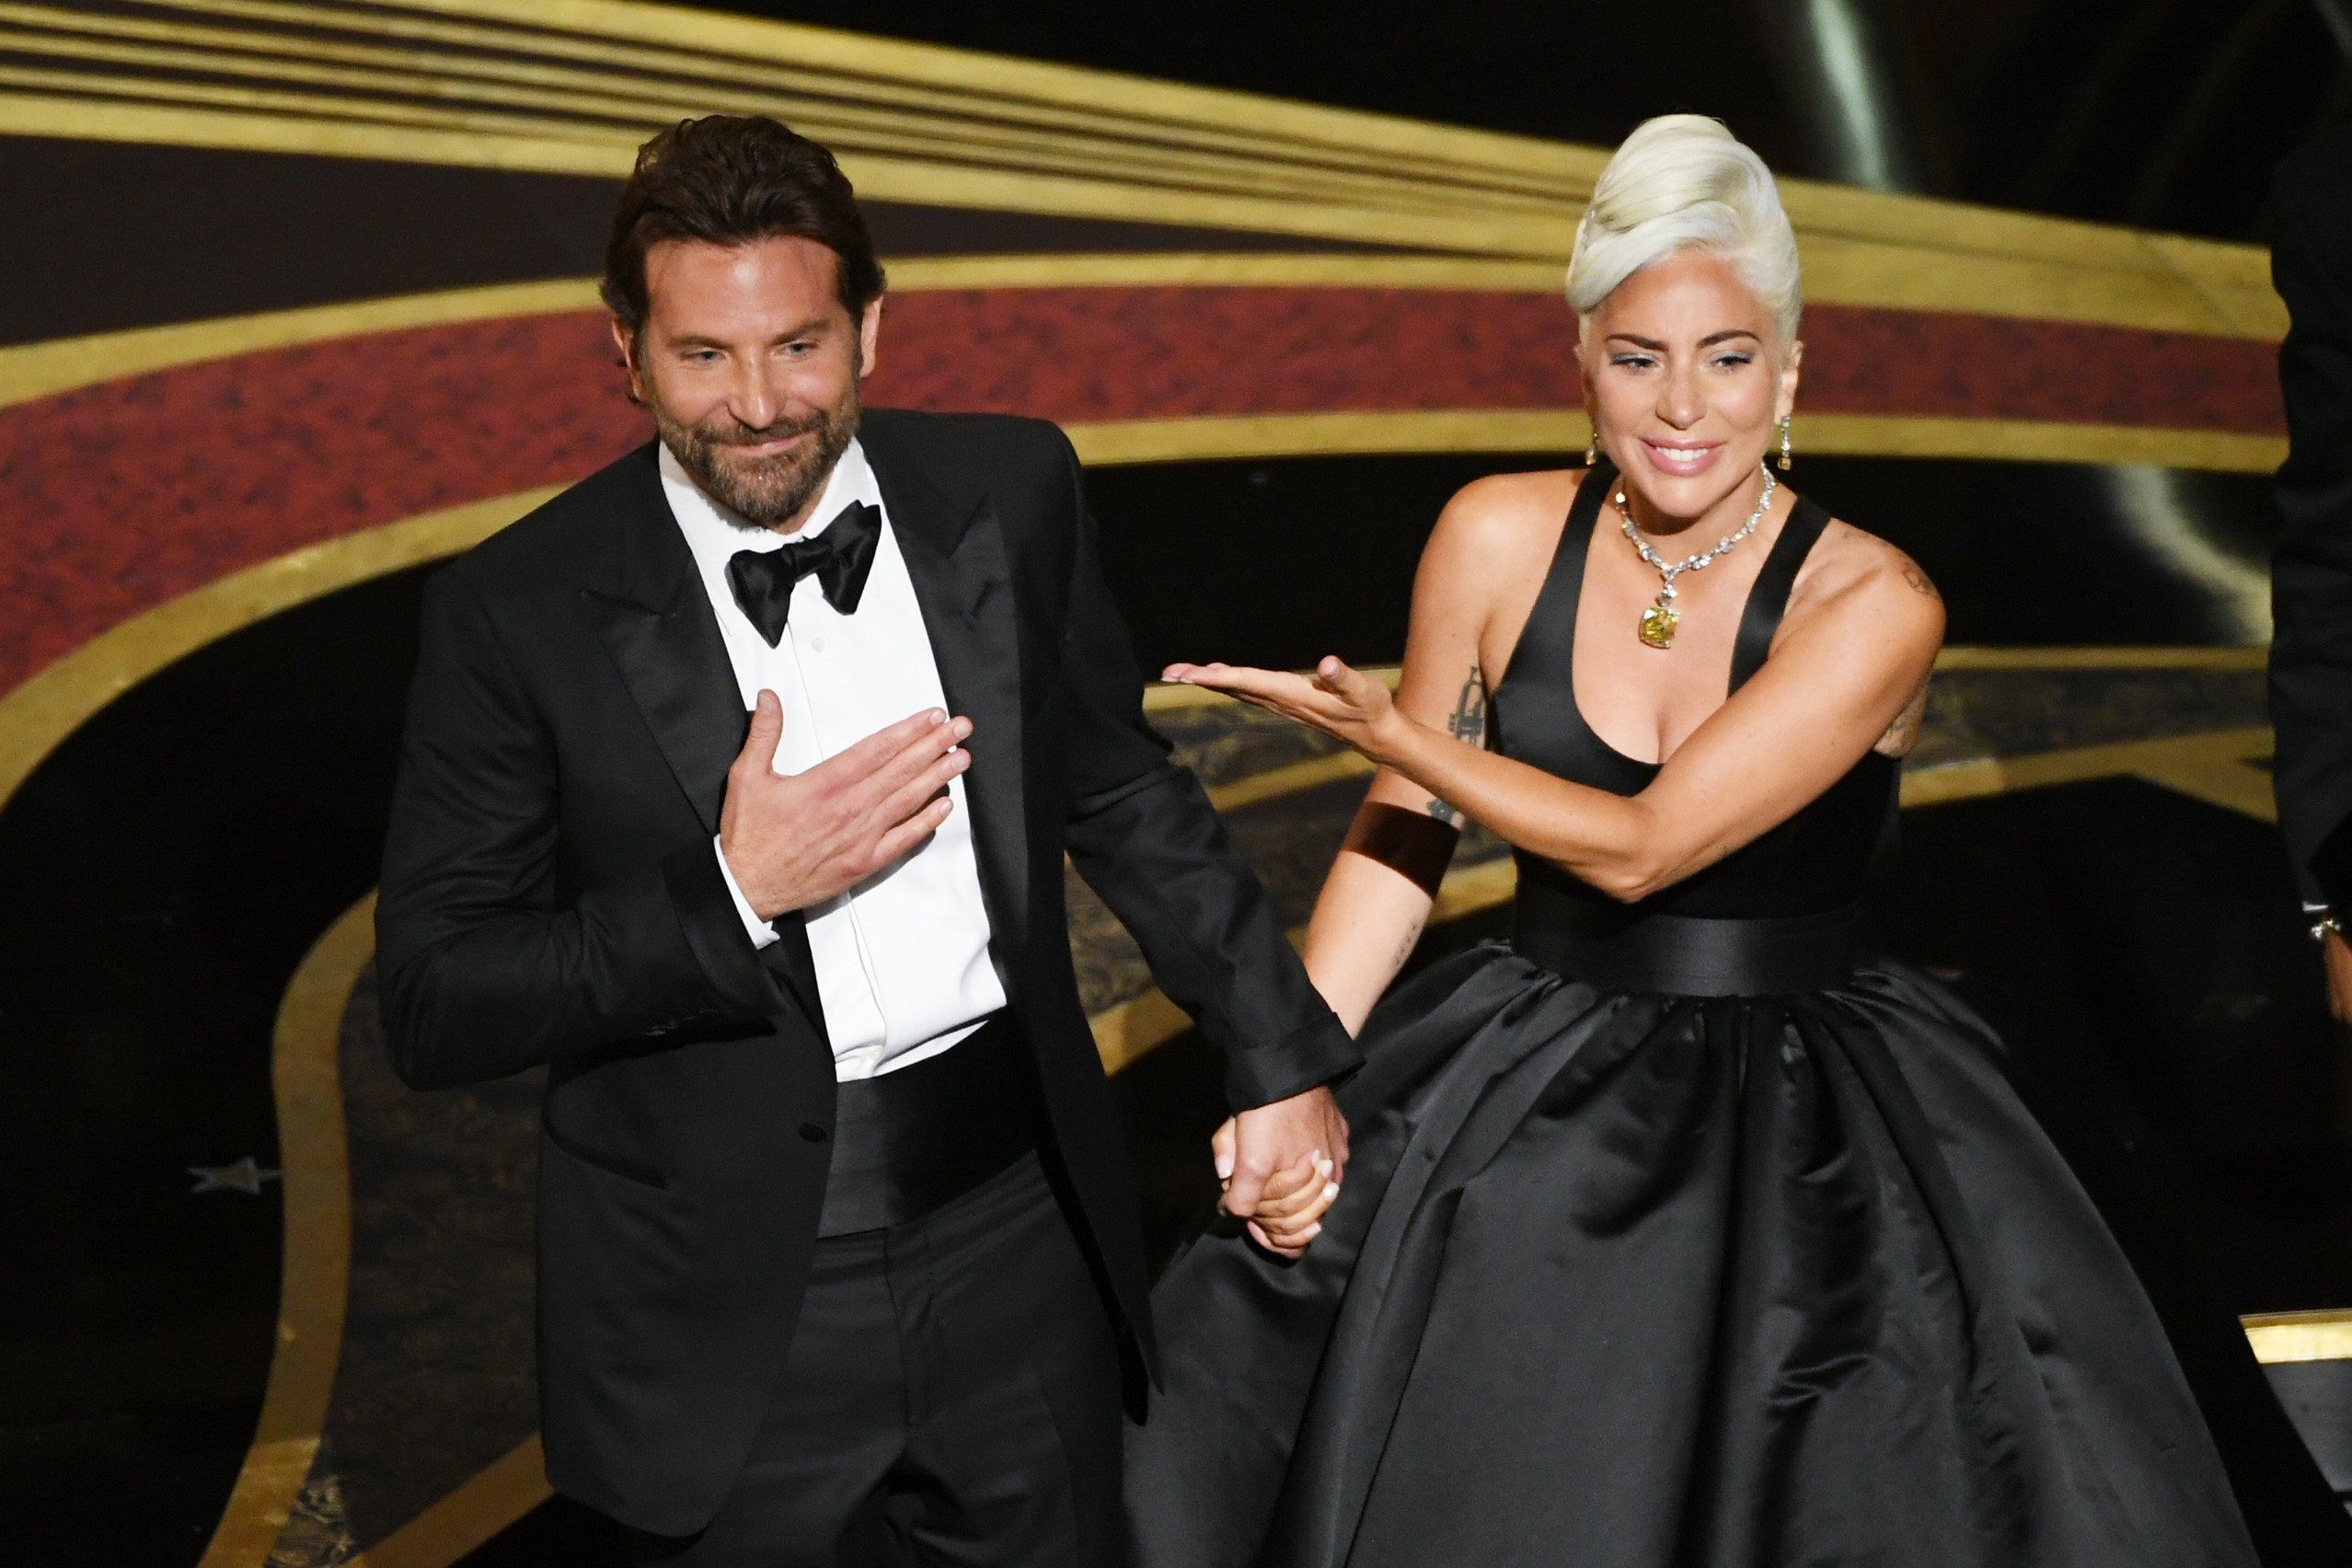 Bradley Cooper and Lady Gaga holding hands at the 2019 Academy Awards | Photo: Getty Images